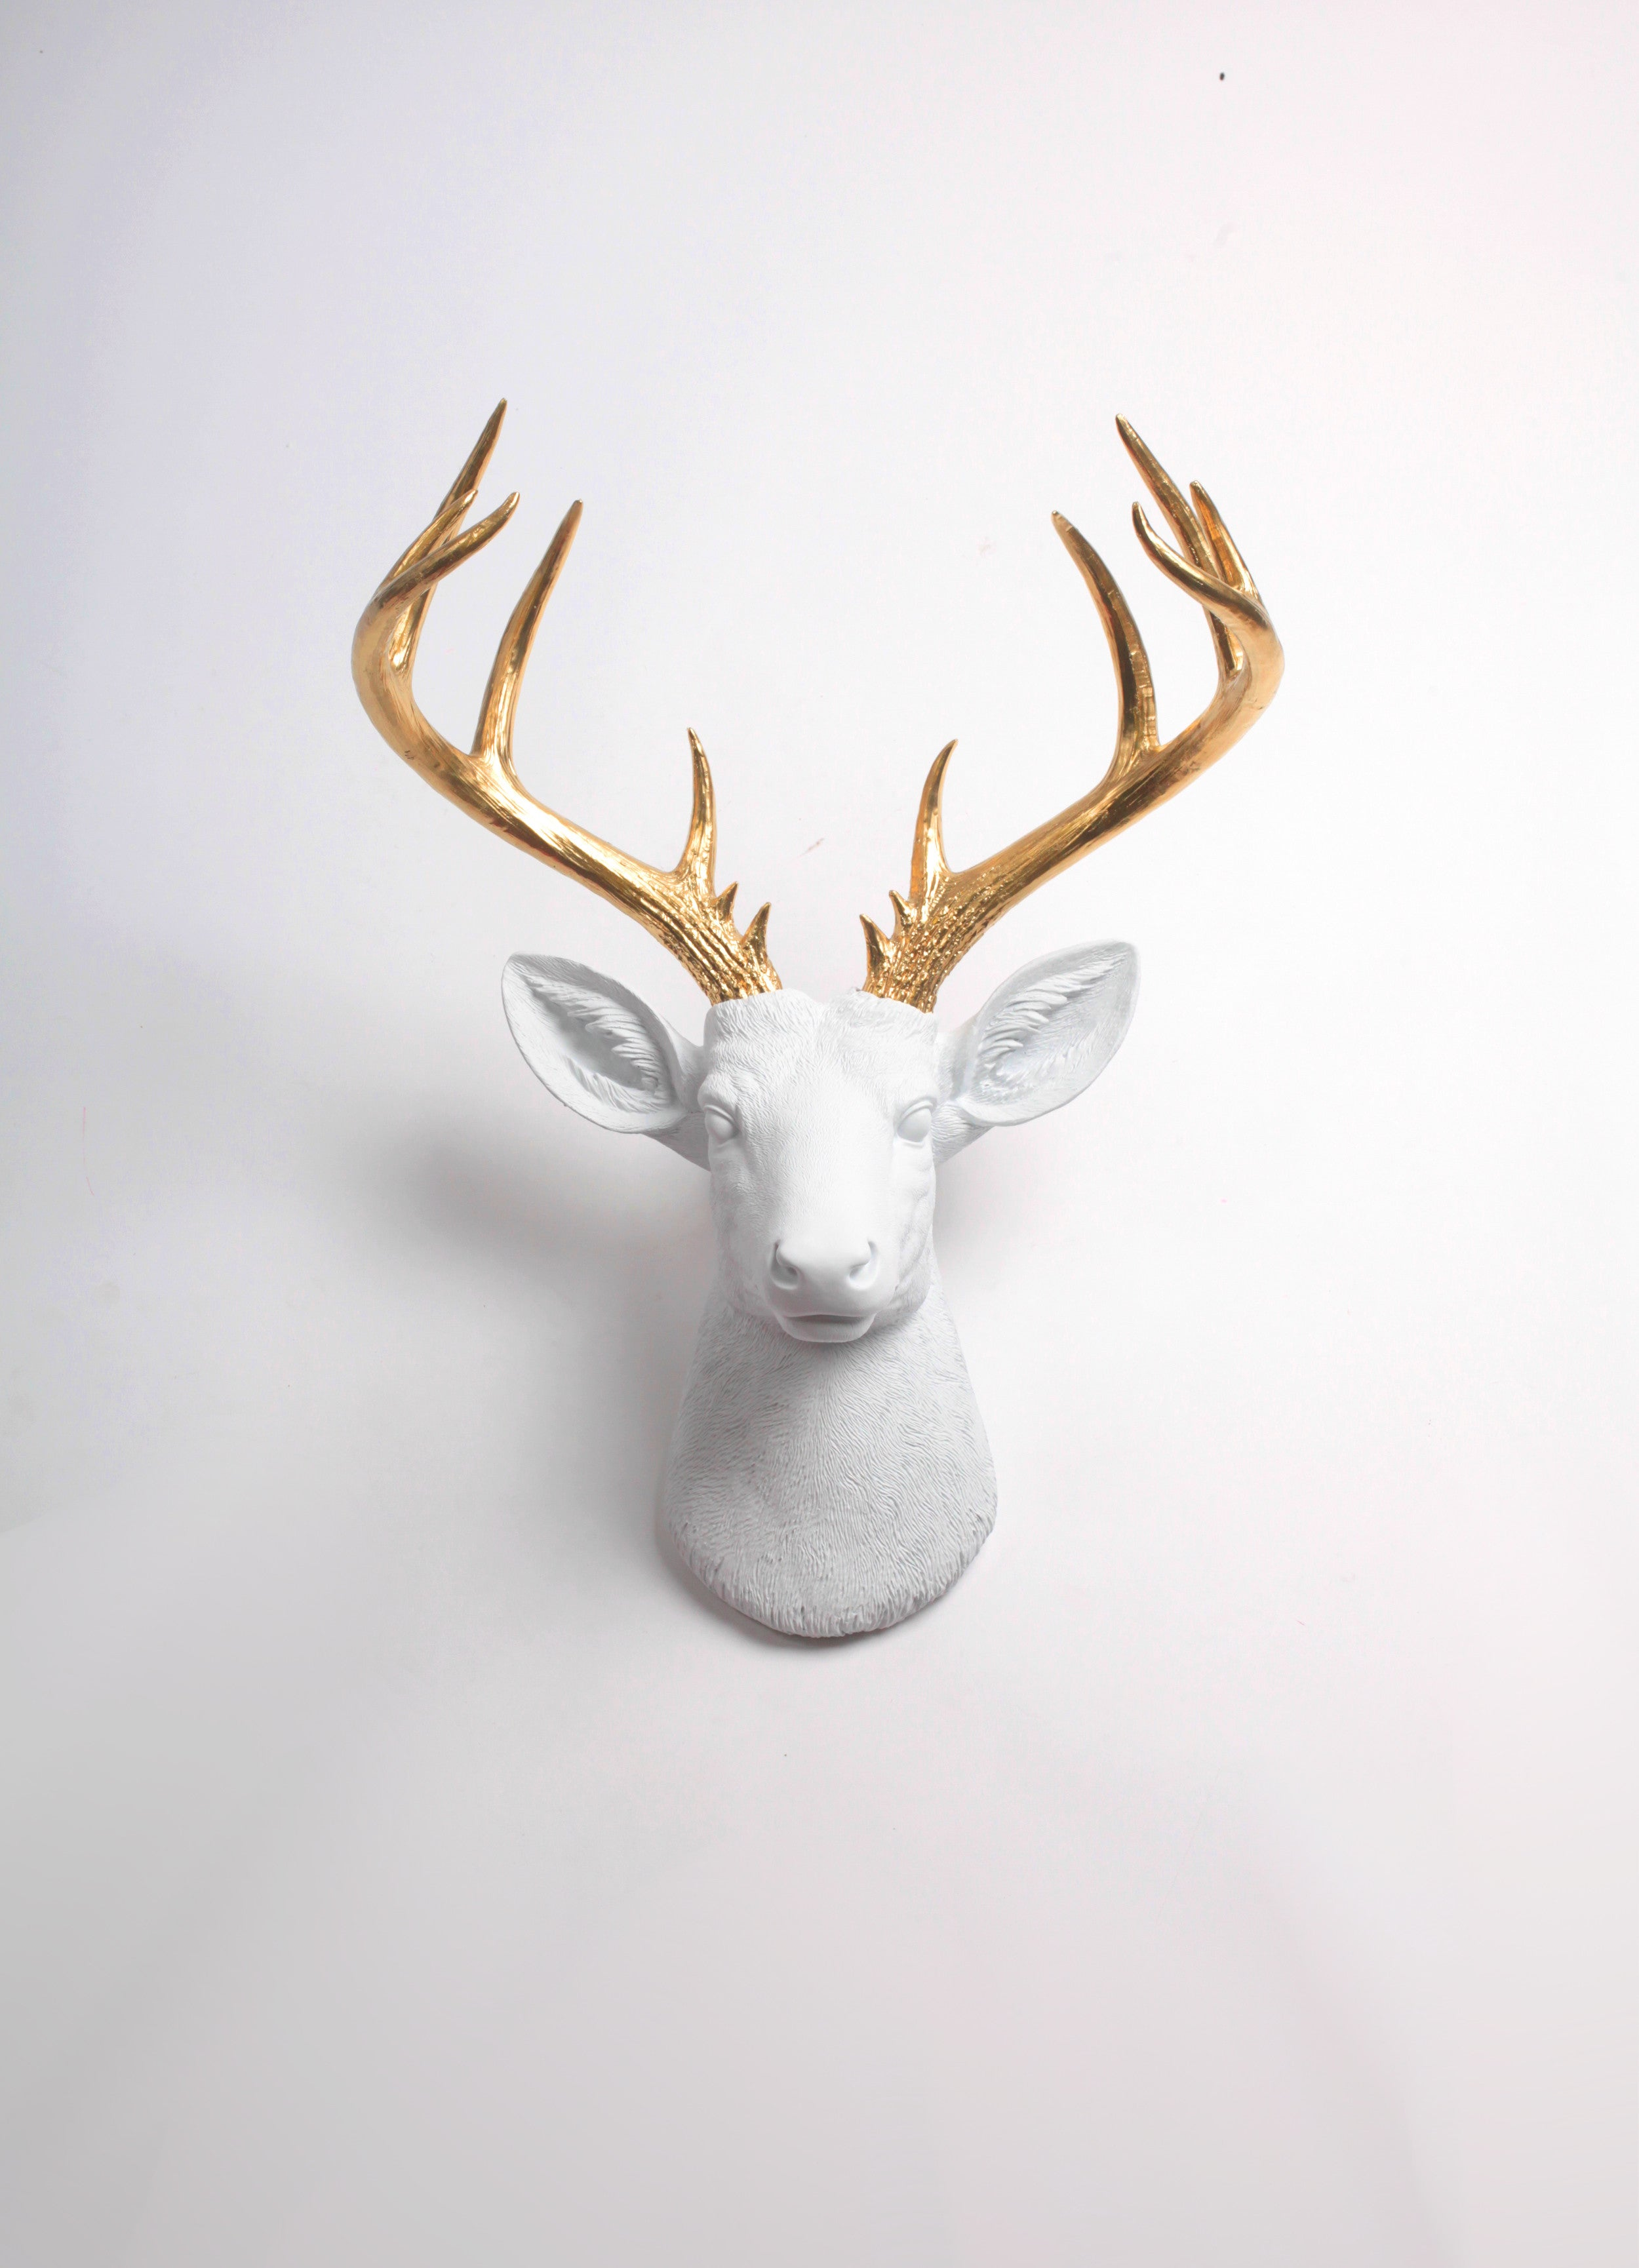 The XL Alfred | Faux Deer Head | Faux Taxidermy | White Resin W/ Gold Antlers